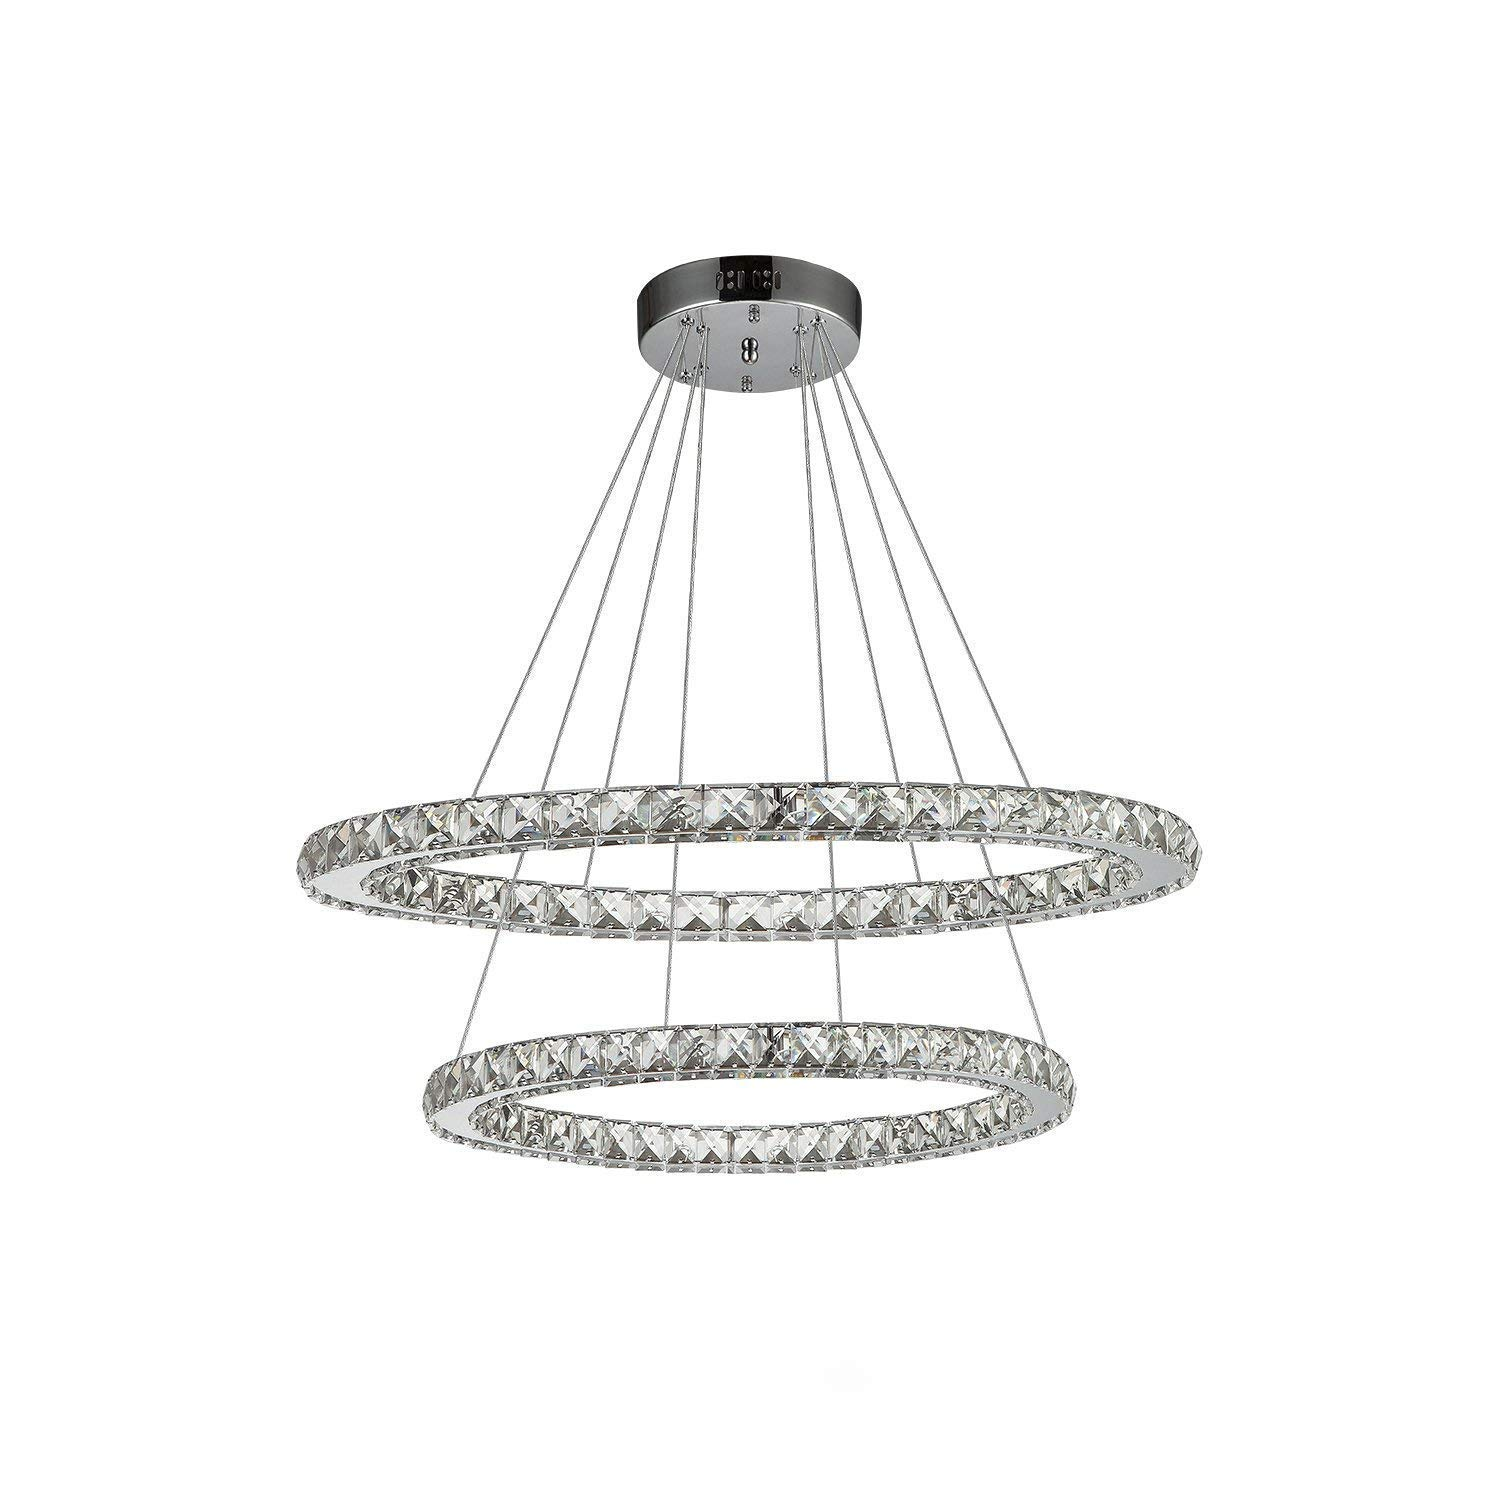 Etelux Crystal Chandelier Adjustable Contemporary Ceiling Lights Fixtures DIY Design LED Pendant Lighting Perfect for Dining Room,Entryway [Energy Class A++]